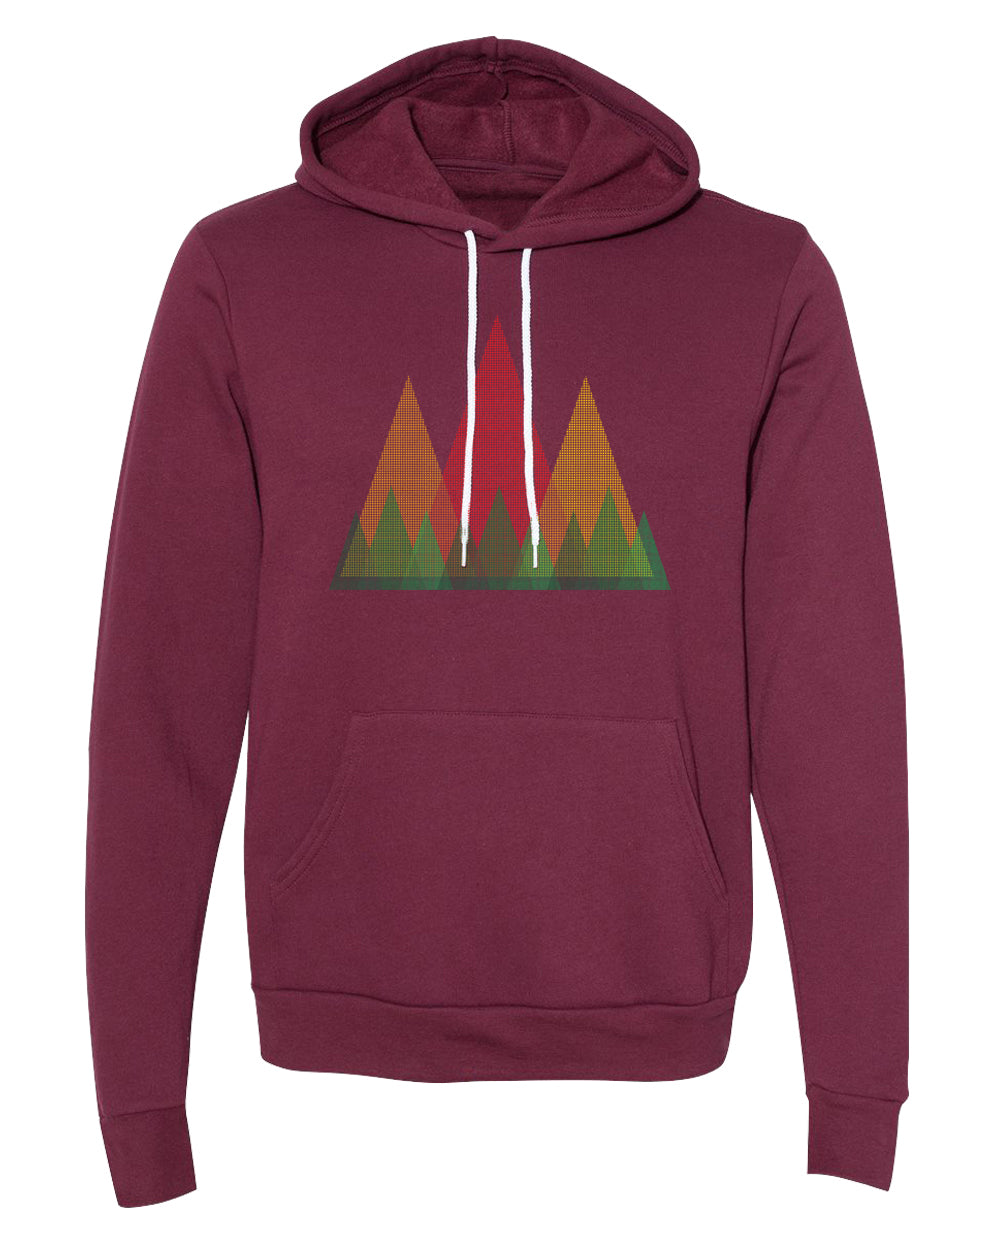 Sweater - Triangle Tree Line With Mountains Unisex Outdoor Hoodie Nature Sweatshirt